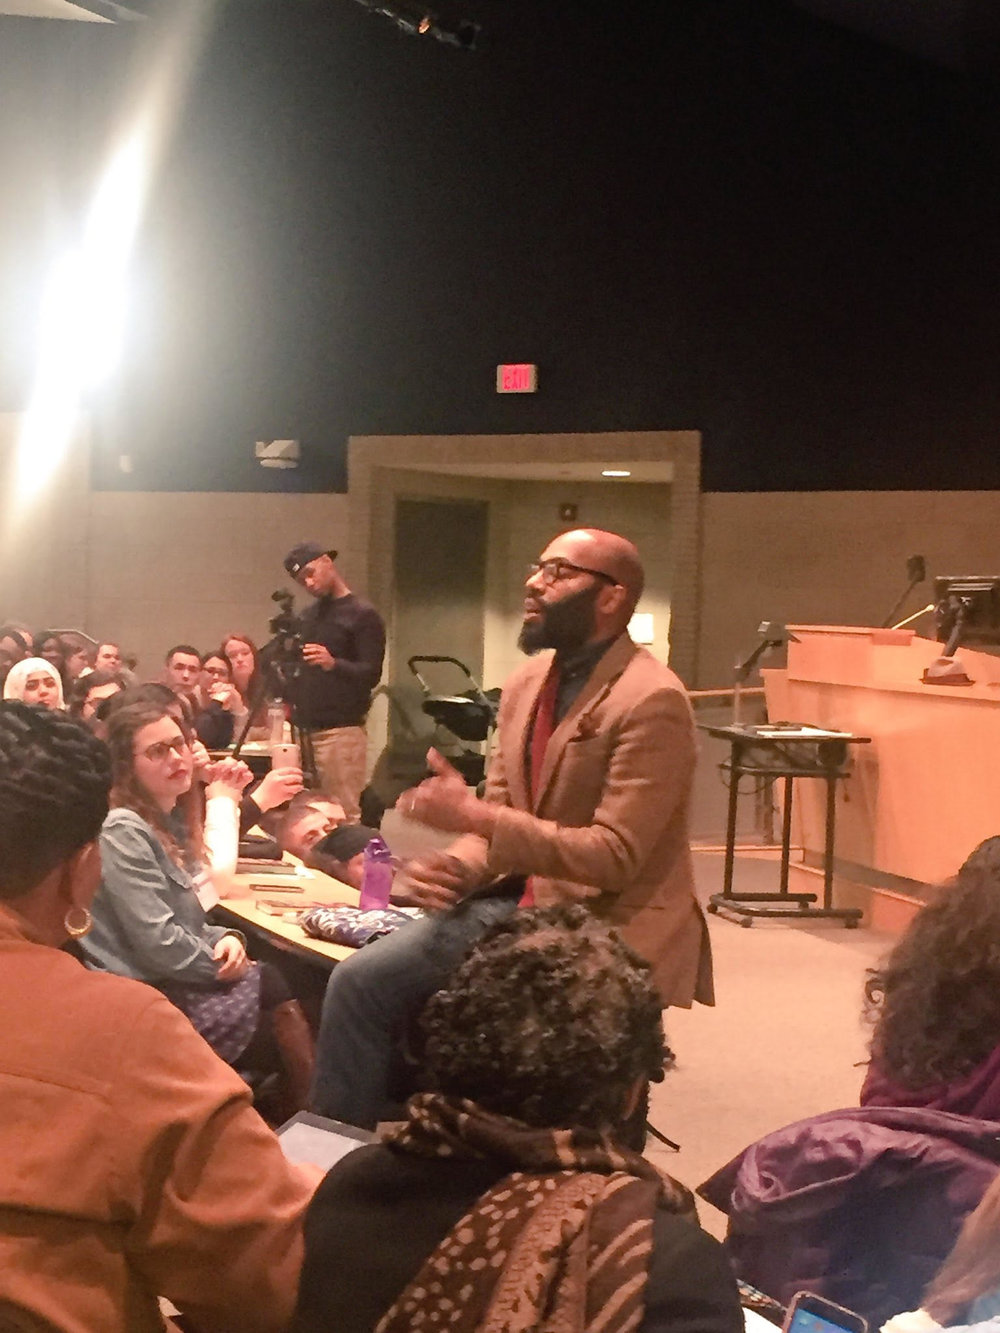 The day concluded with a keynote speaker, Dr. Christopher Emdin, a professor from Columbia University, published author and influential speaker on education issues. (Photo courtesy of Christopher Emdin's Twitter @chrisemdin)